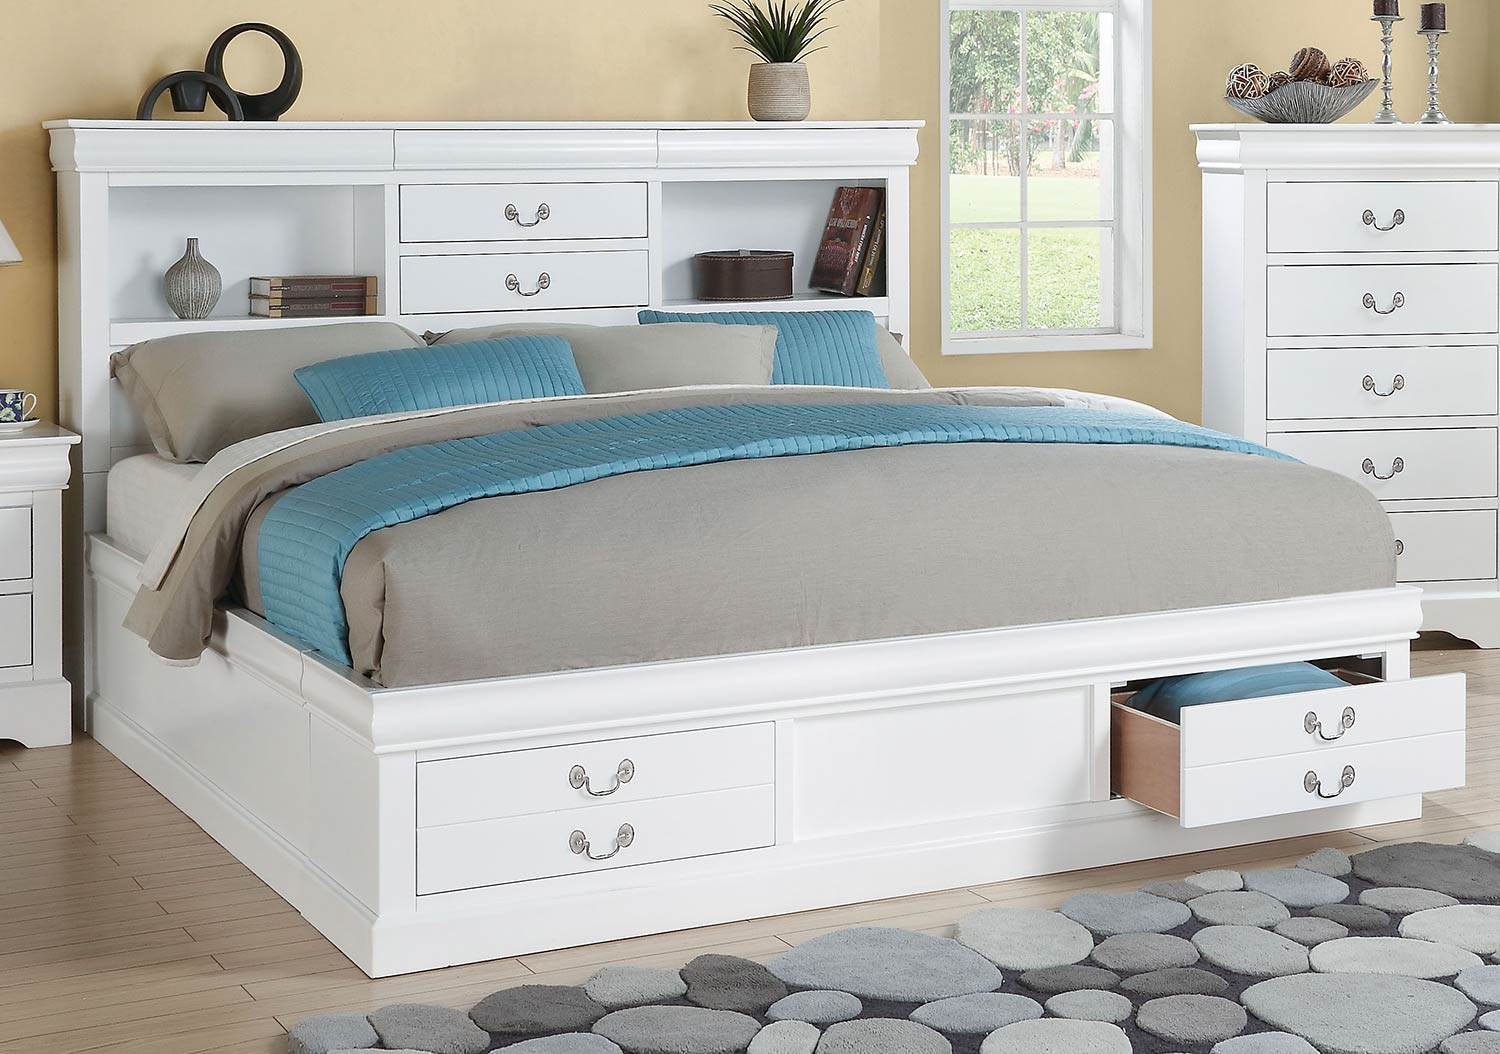 Acme Louis Philippe III Bed with Storage - White